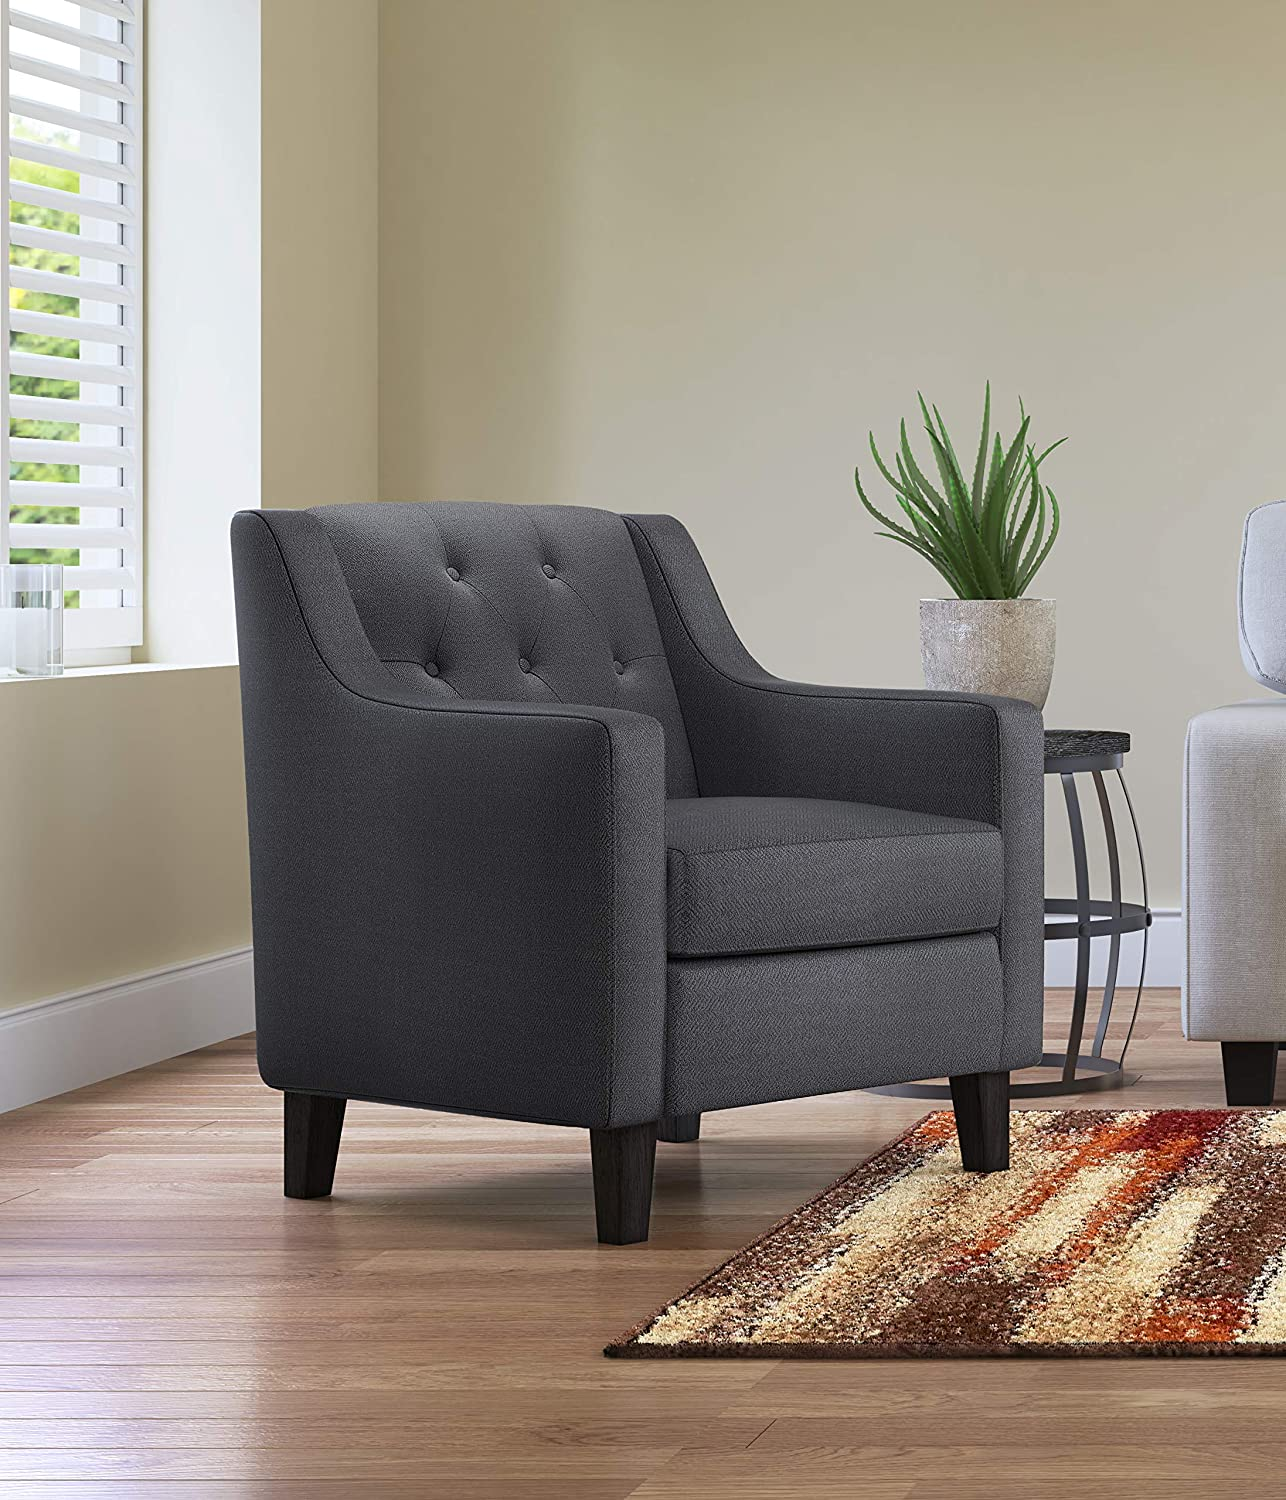 Serta Nina Accent Chair, Charcoal